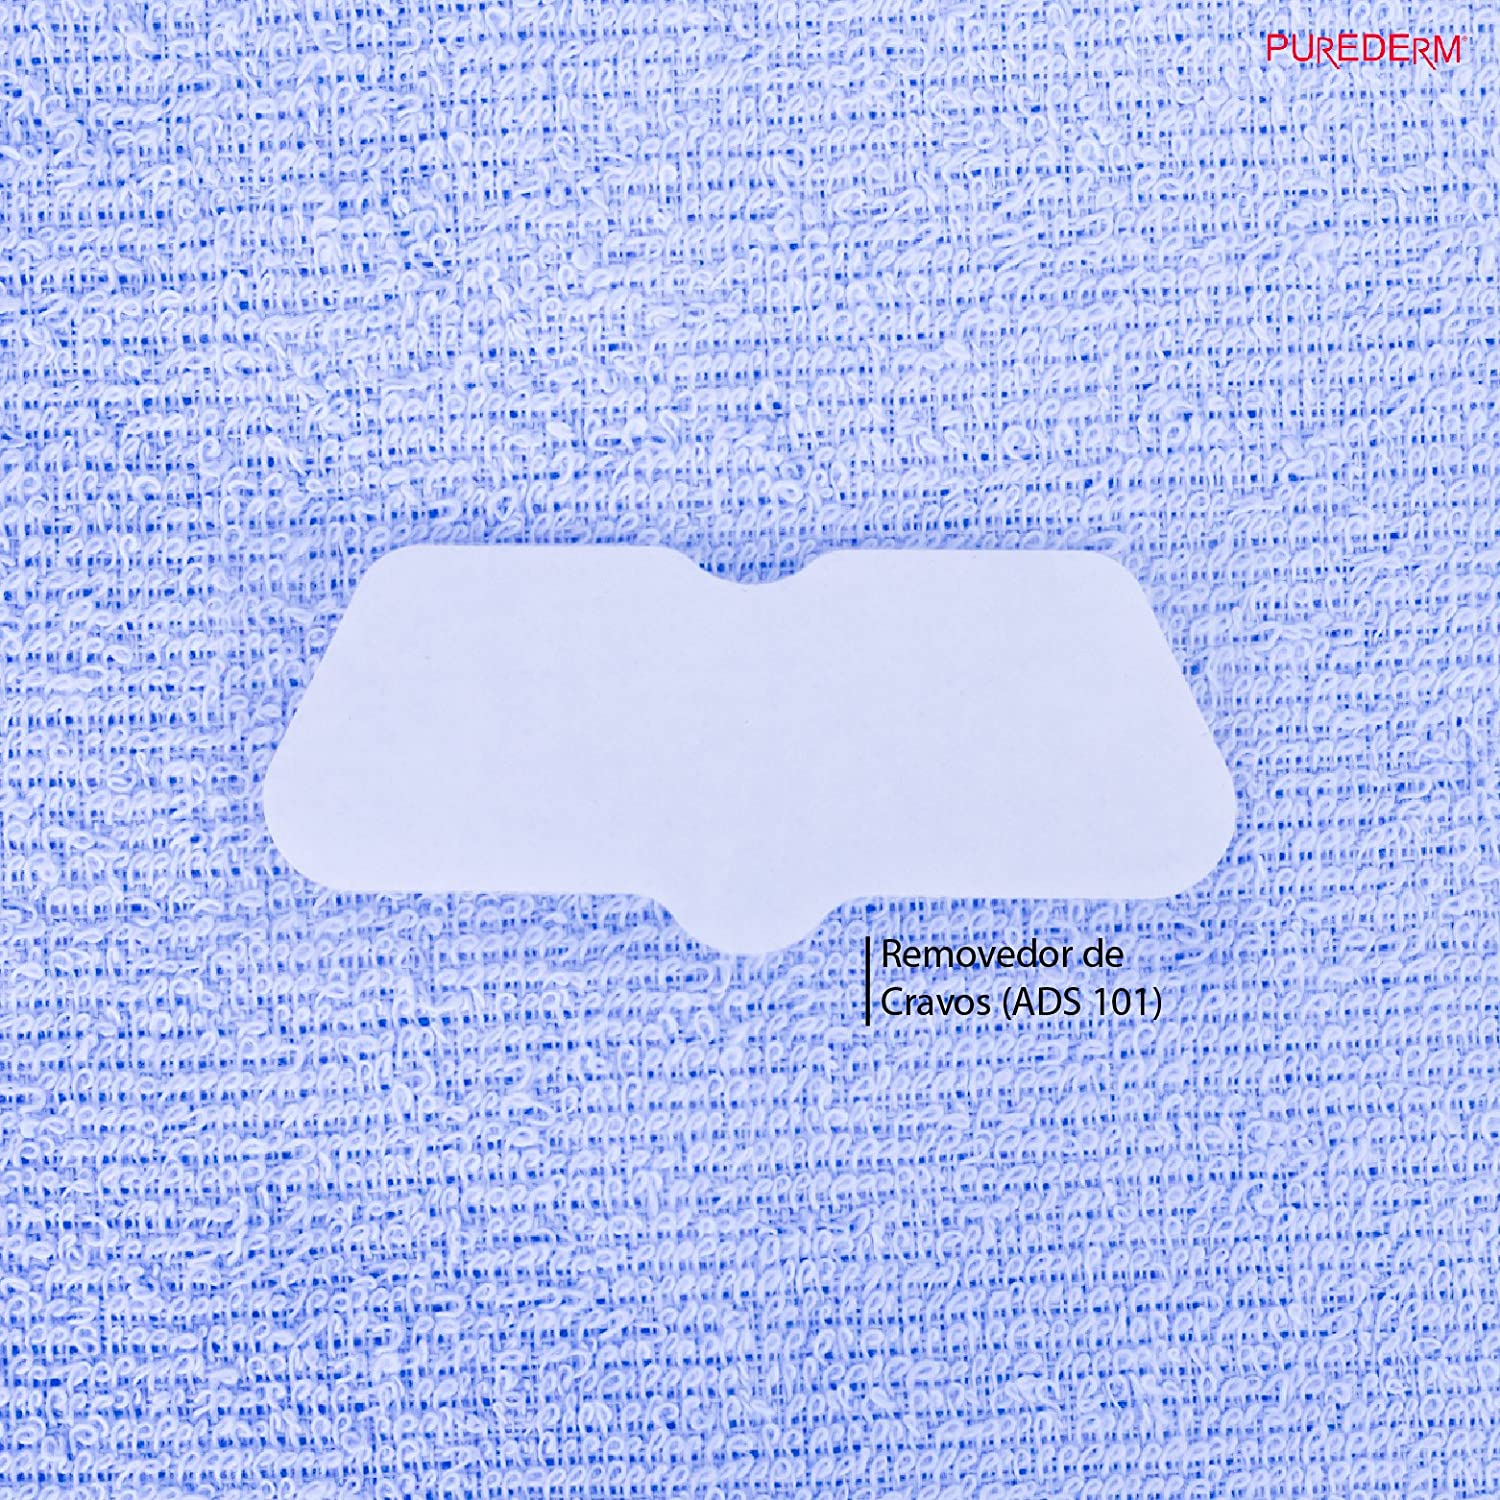 Deep Cleansing Nose Pore Strips (contains 6 strips) Purederm 102